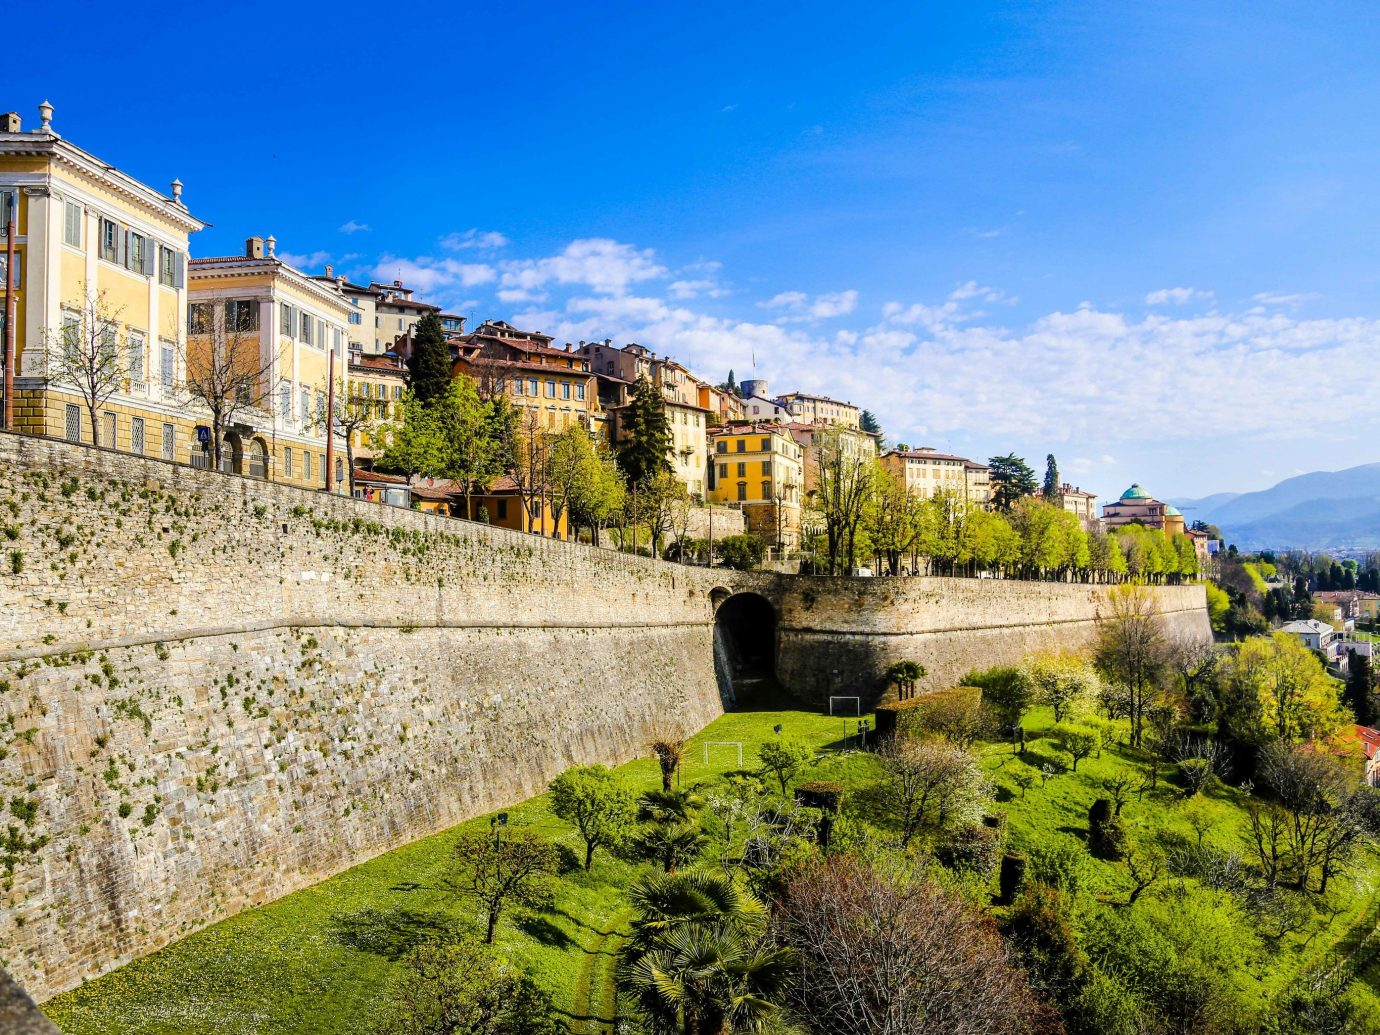 europe Italy Off-the-beaten Path Trip Ideas sky Town water City wall tree historic site plant Village estate real estate building landscape Villa facade tourism mountain